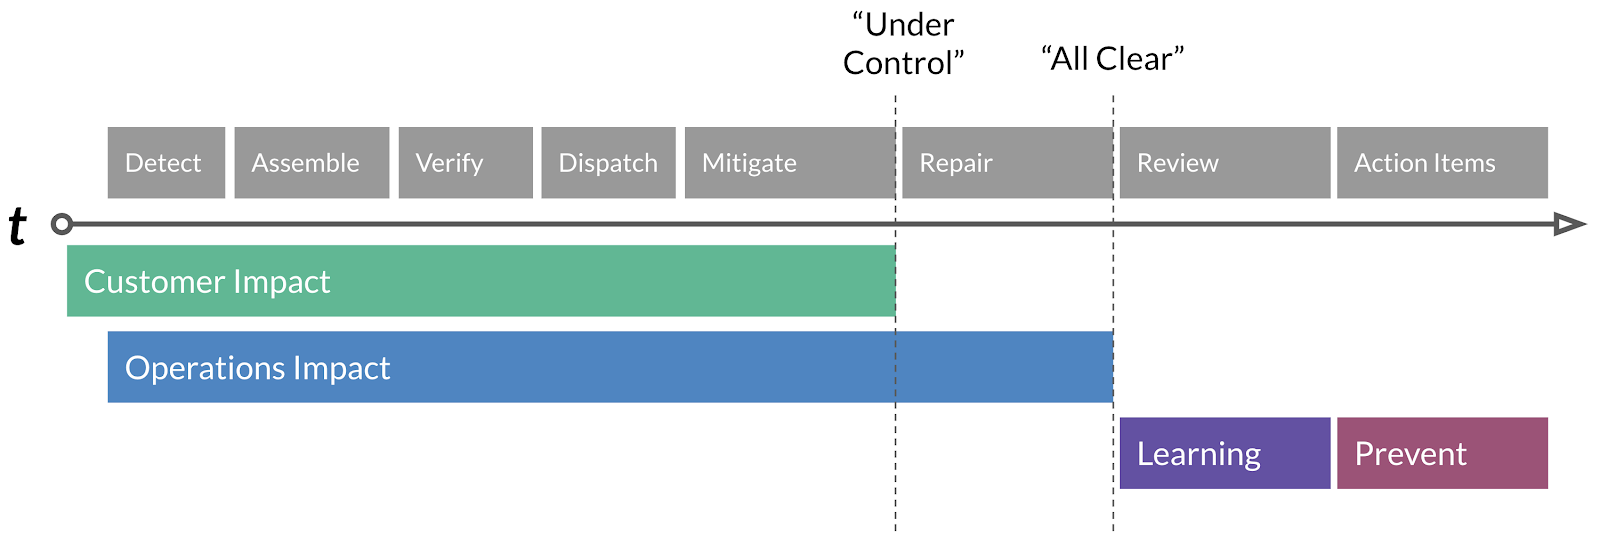 A timeline graph of incident response stages